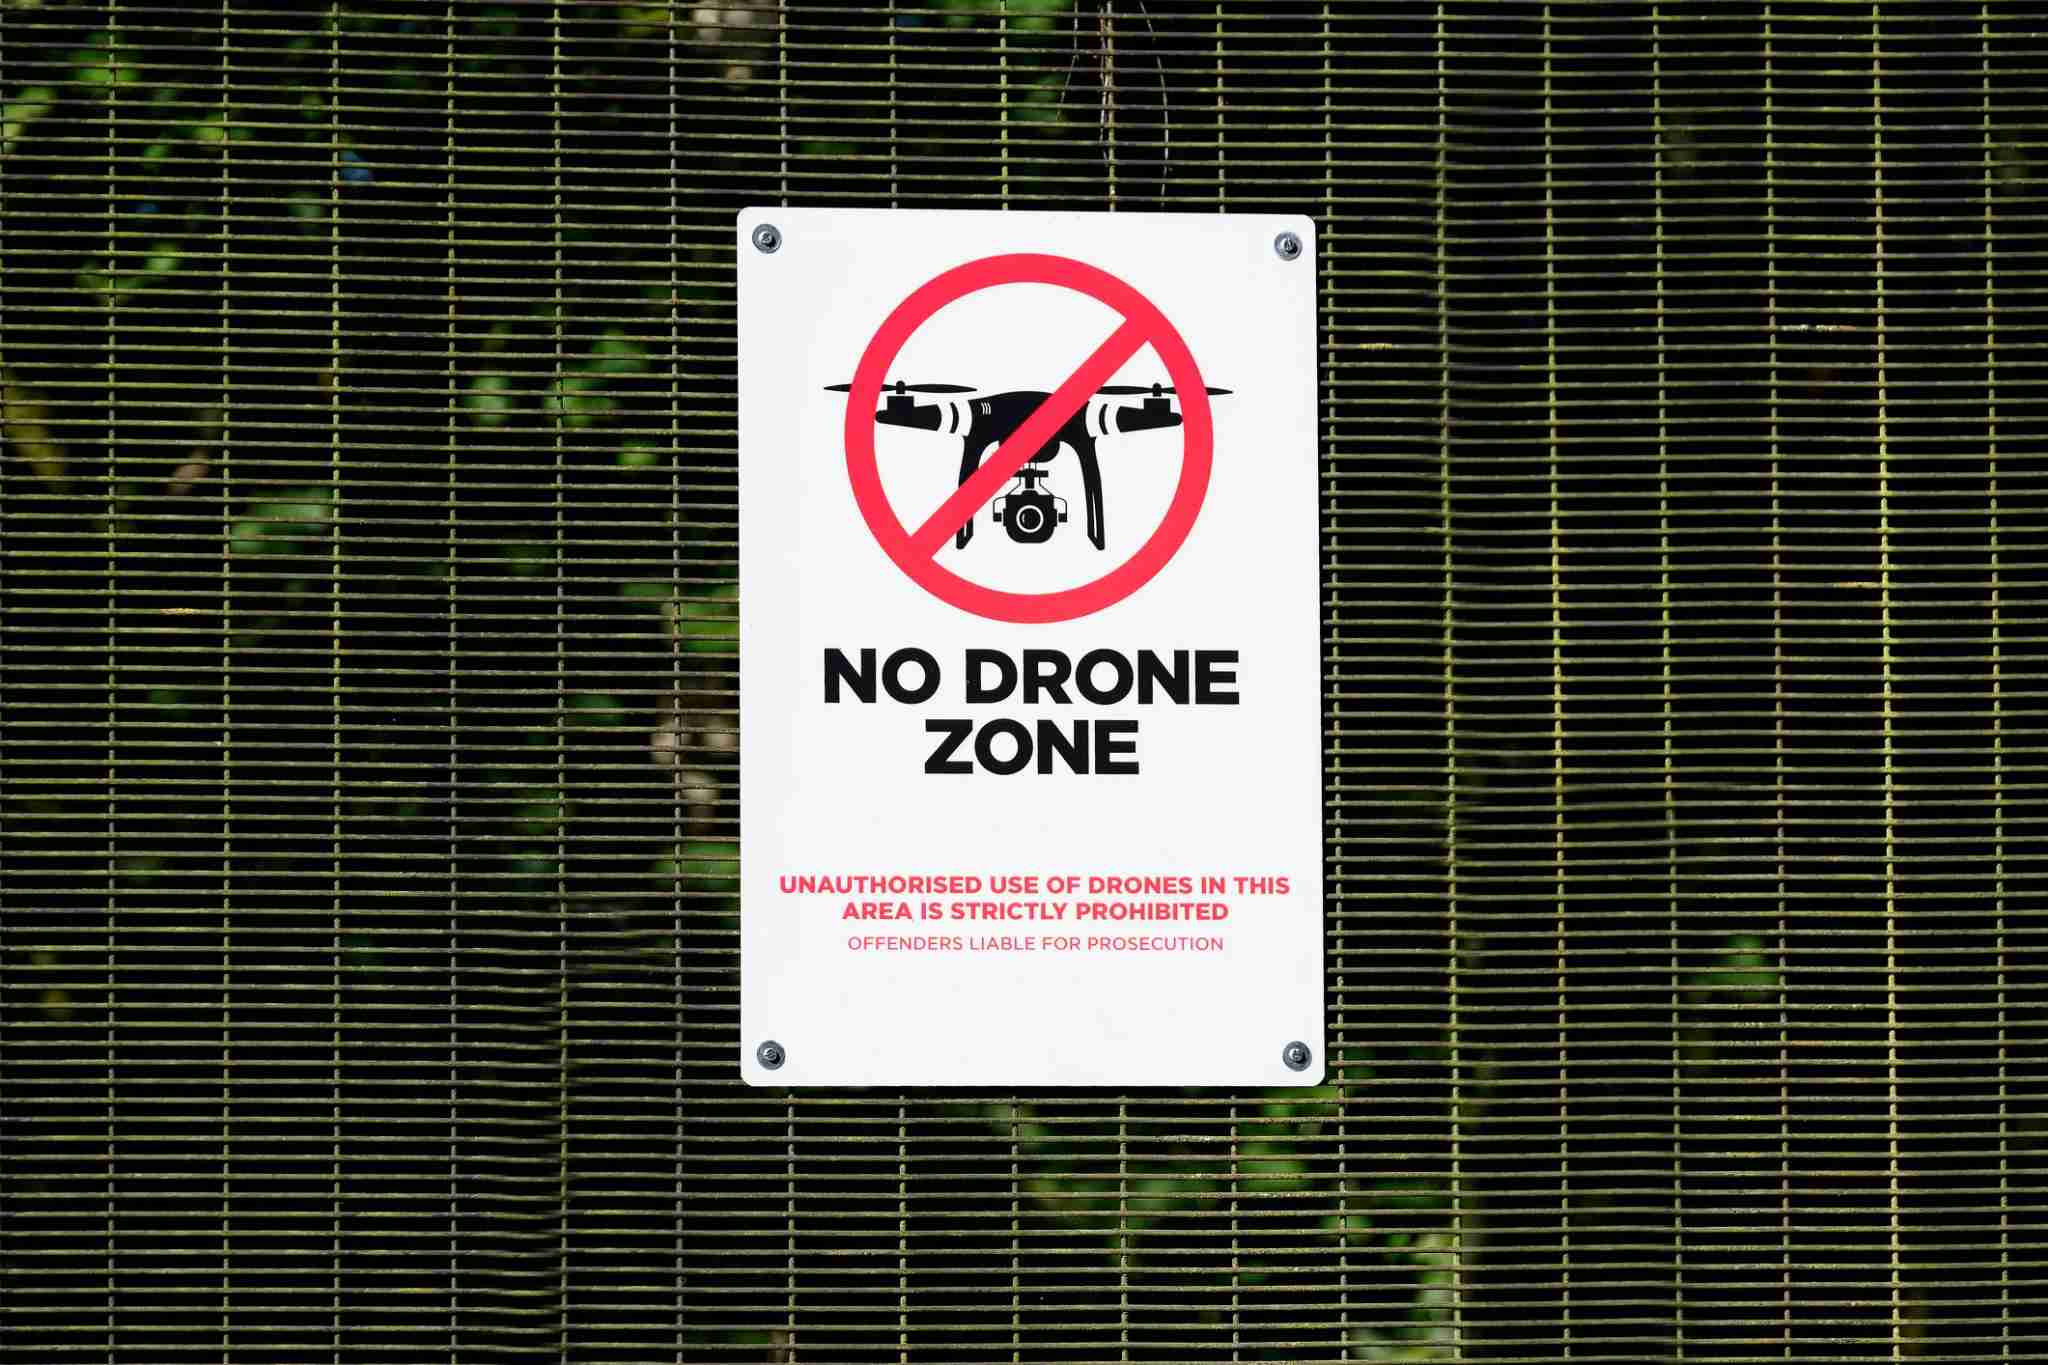 No drone zone sign not allowing flying of quadcopter at military police site near airport uk (Photo by Richard Johnson/Getty Images)